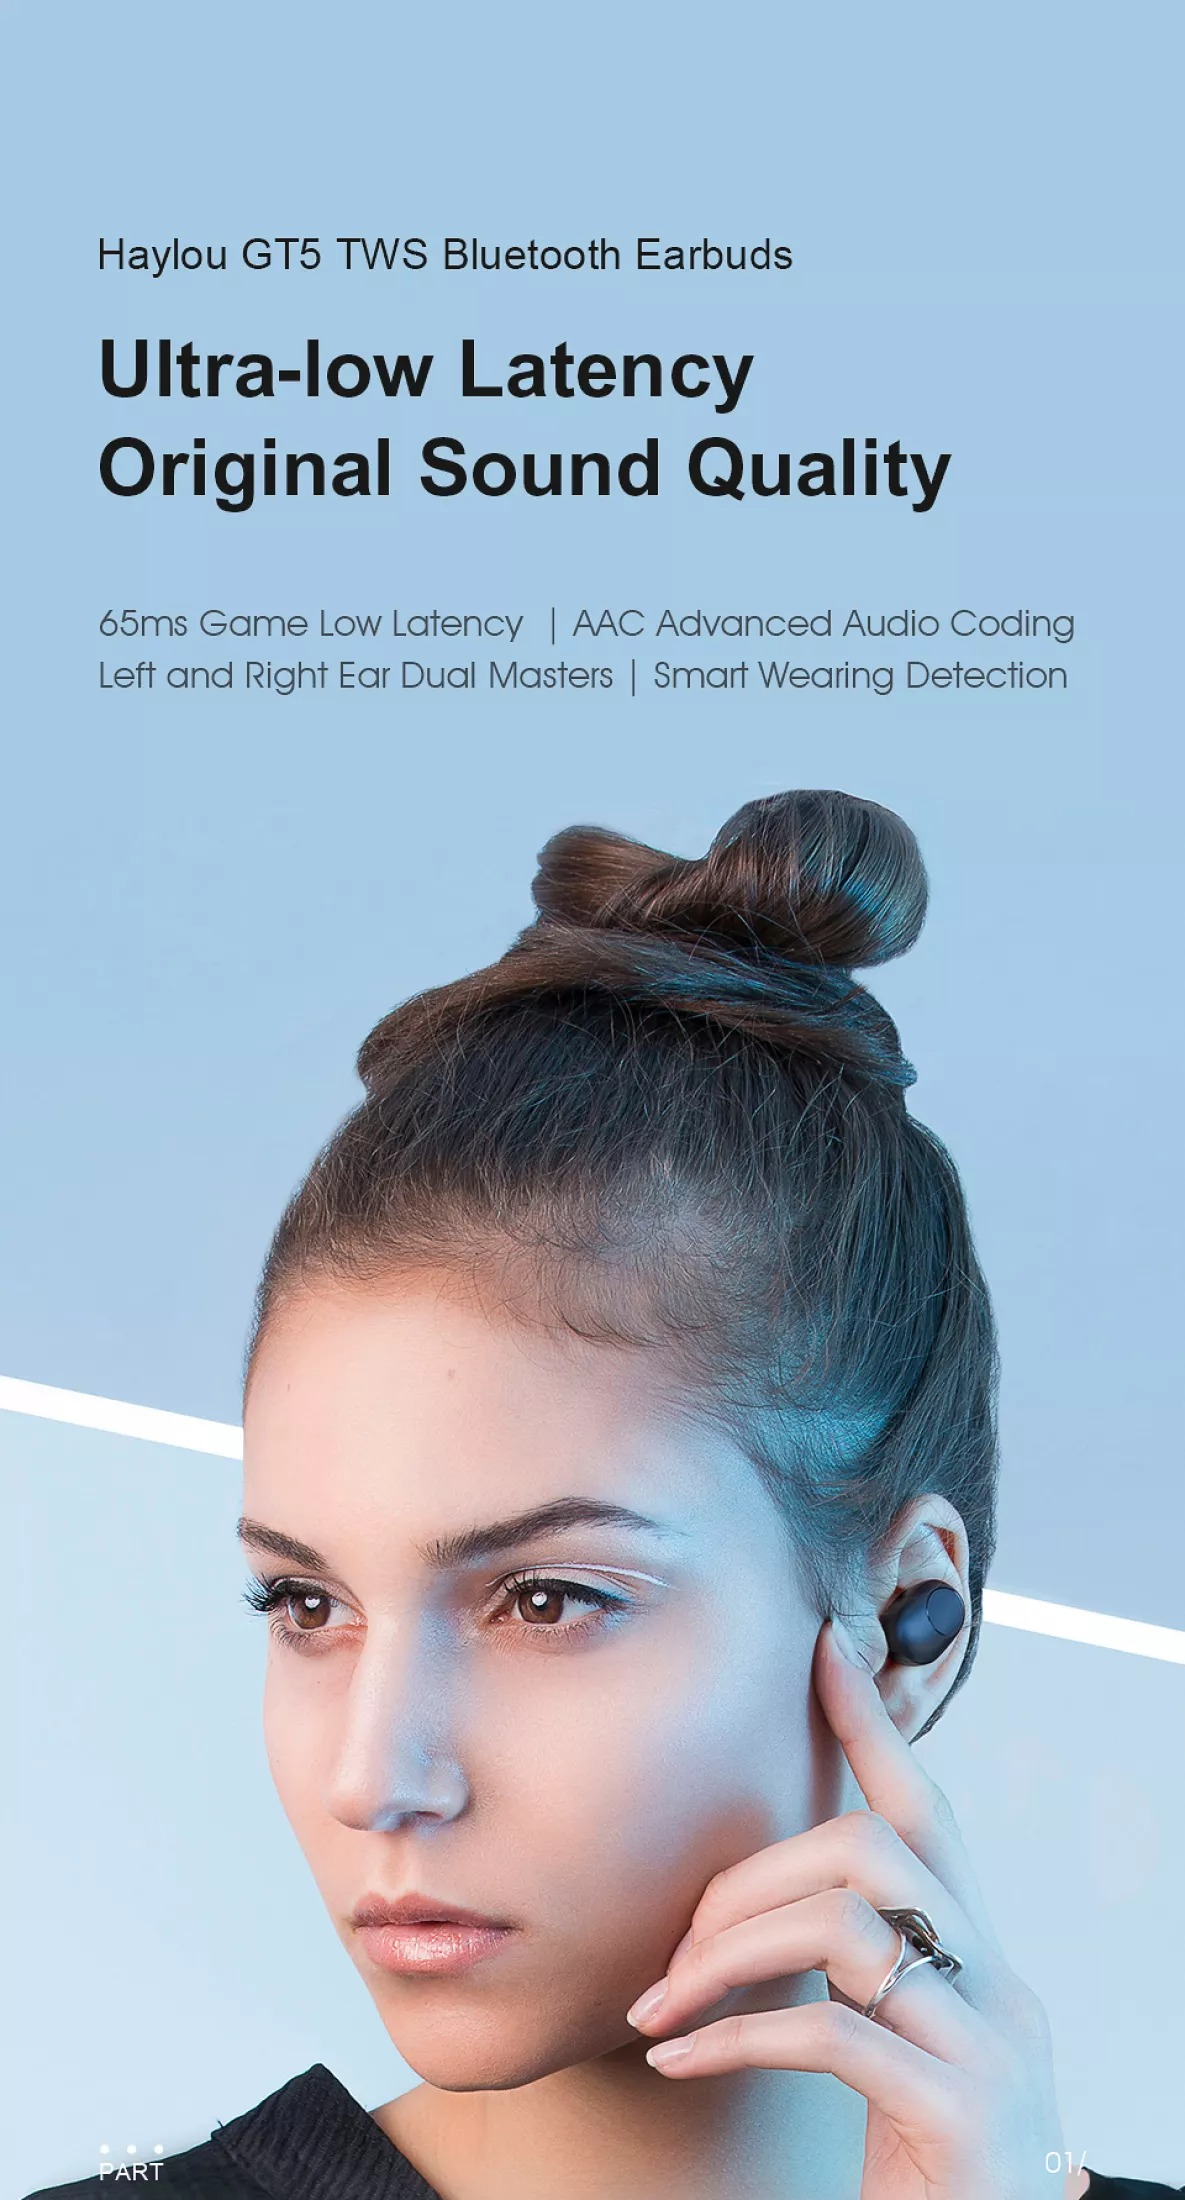 Tai nghe Bluetooth Haylou GT5 2